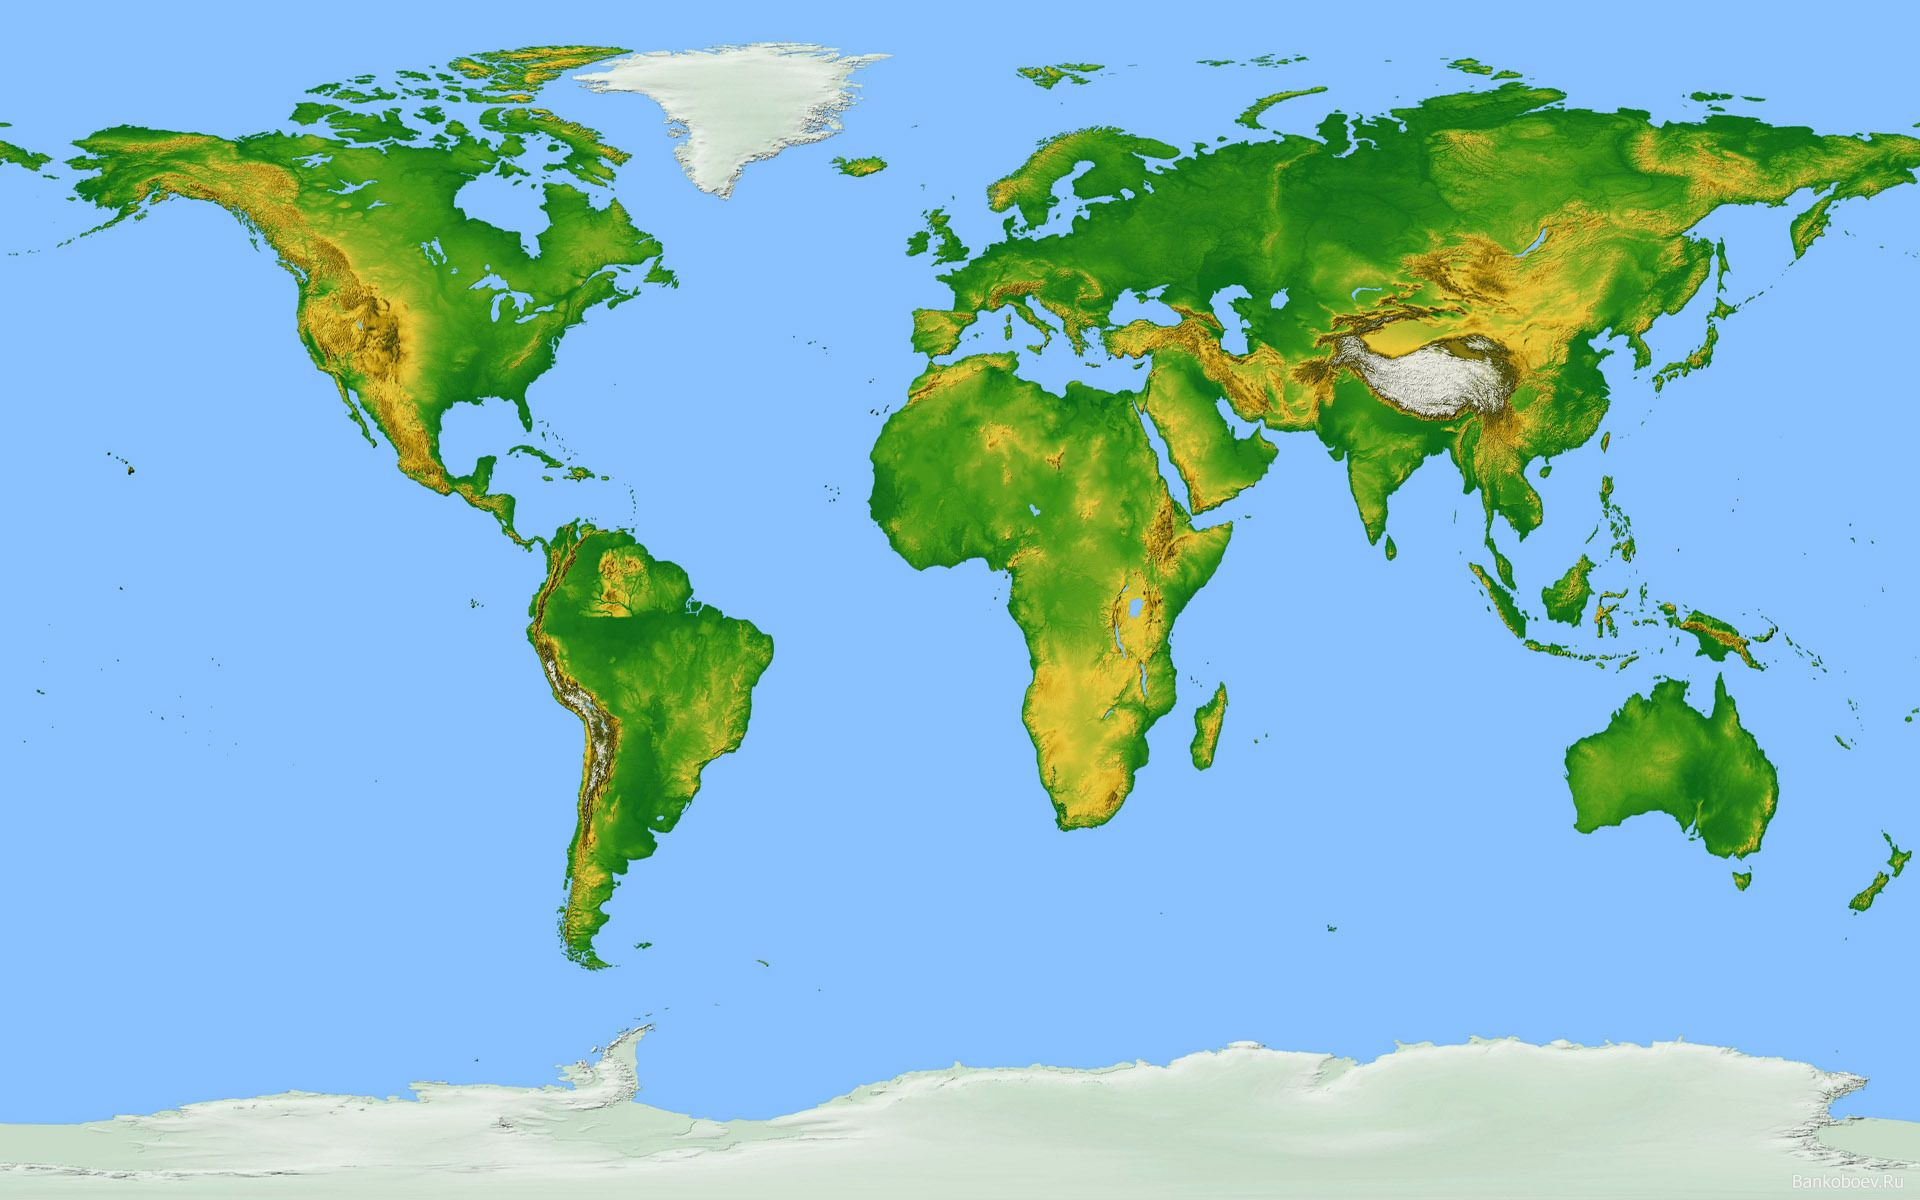 Geographic world map wallpaper download geographic world map geographic world map wallpaper download geographic world map wallpaper maps free online gumiabroncs Gallery